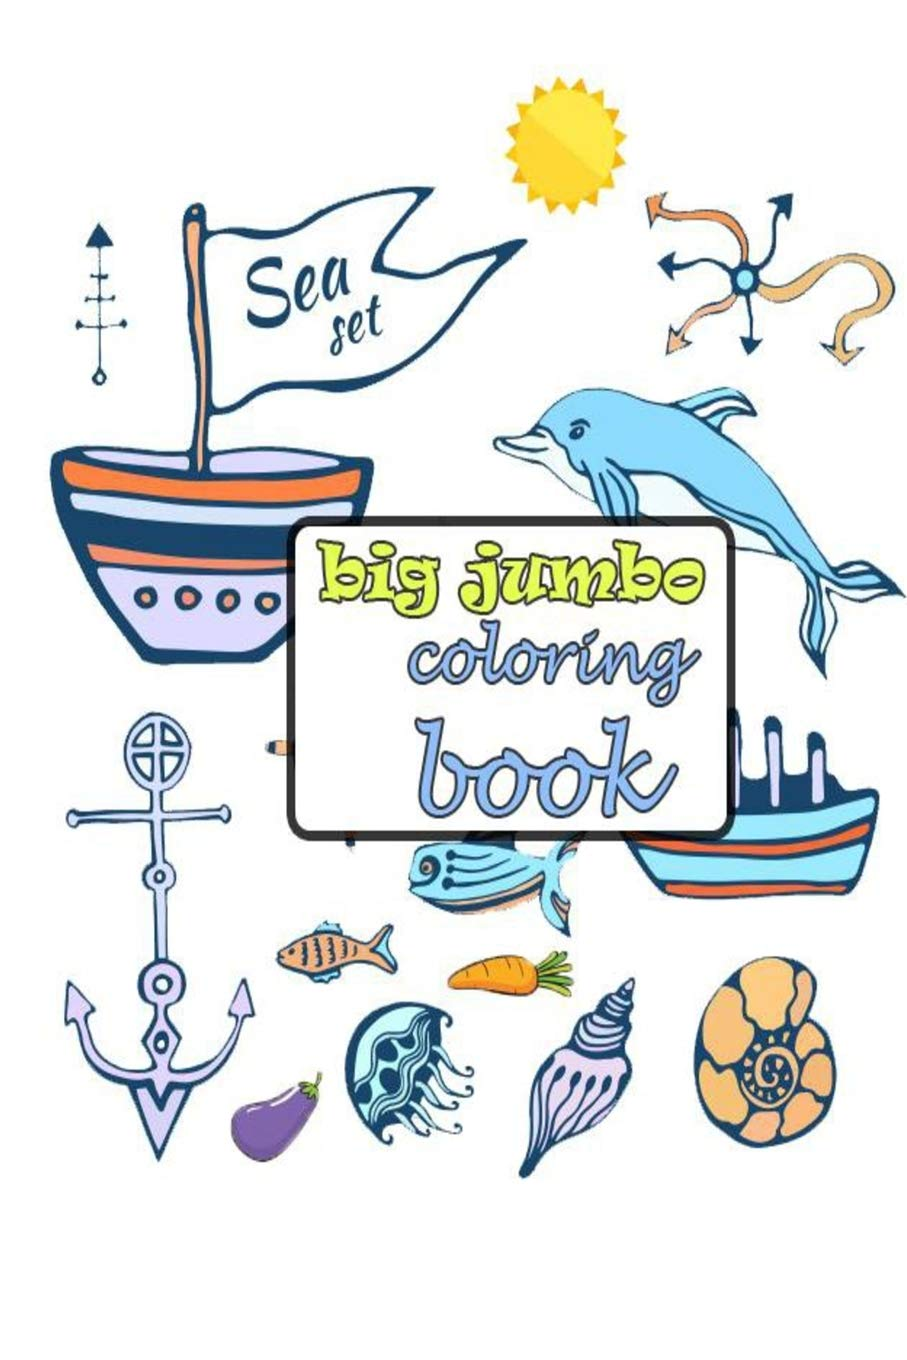 Big Jumbo Coloring Book 26 Coloring Pages Easy Large Giant Simple Picture Coloring Books For Toddlers Kids Ages 2 4 Early Learning Preschool And Kindergarten Size 6 9 Zouhair 9798686877368 Amazon Com Books